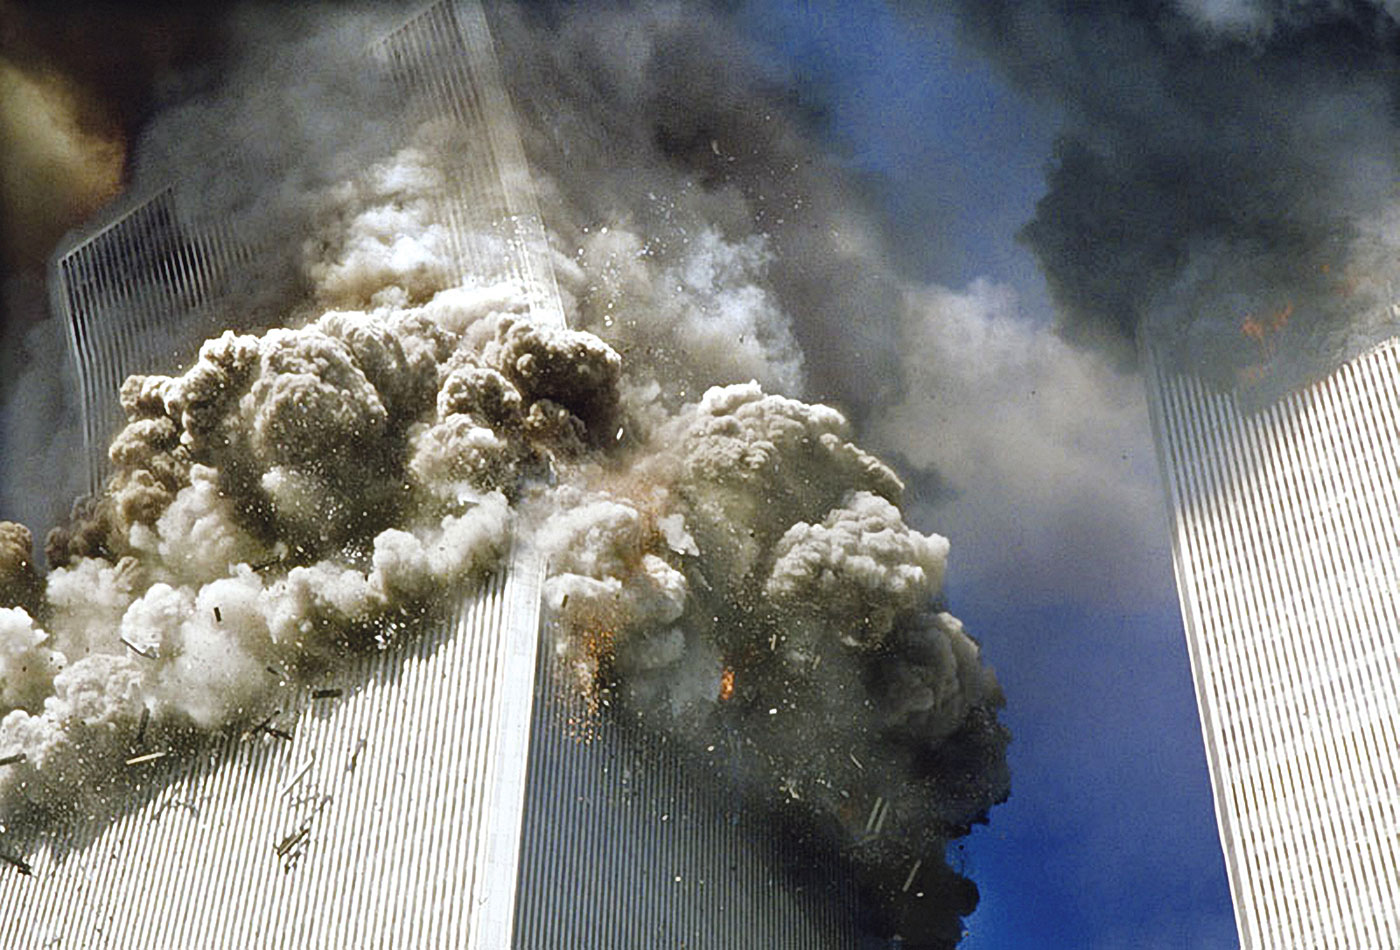 9/11 stock put options